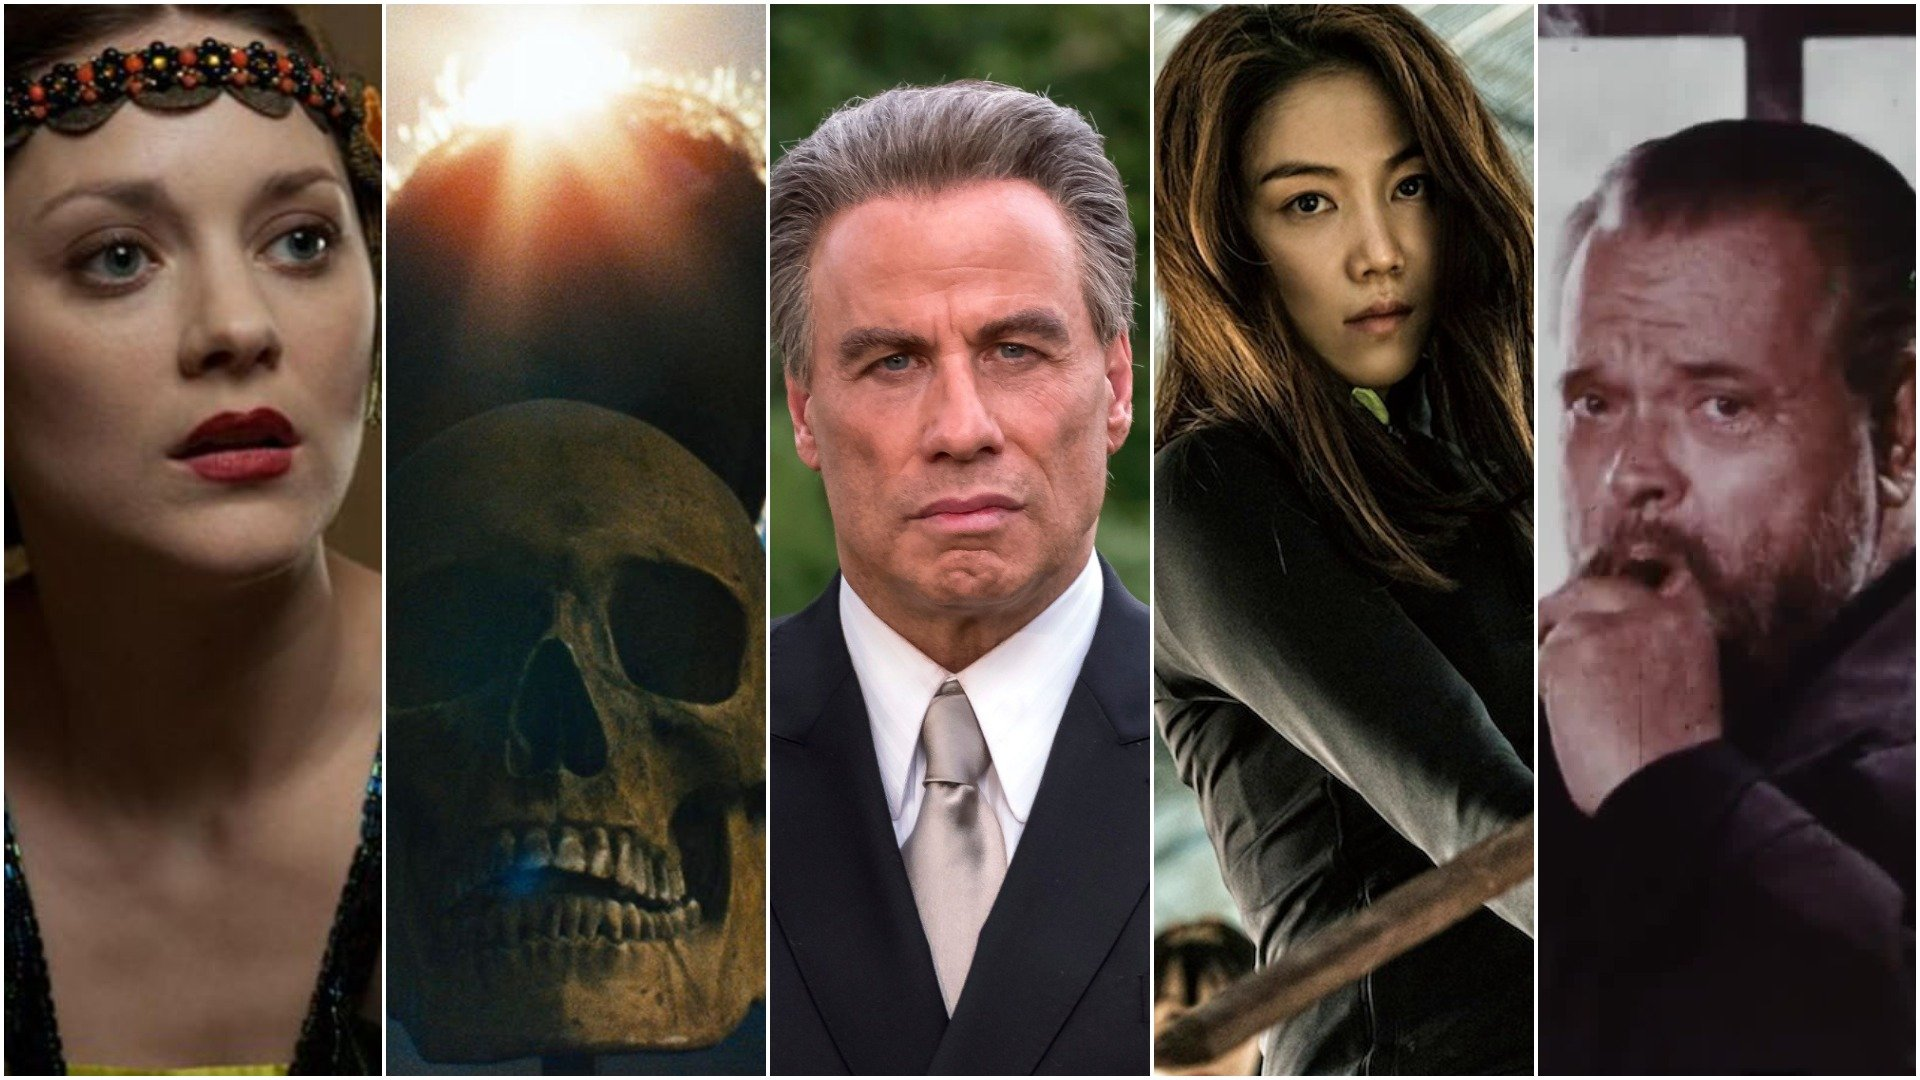 Now Stream This: 'The Immigrant', 'Let the Corpses Tan', 'The Dead Zone', 'Gotti' and More